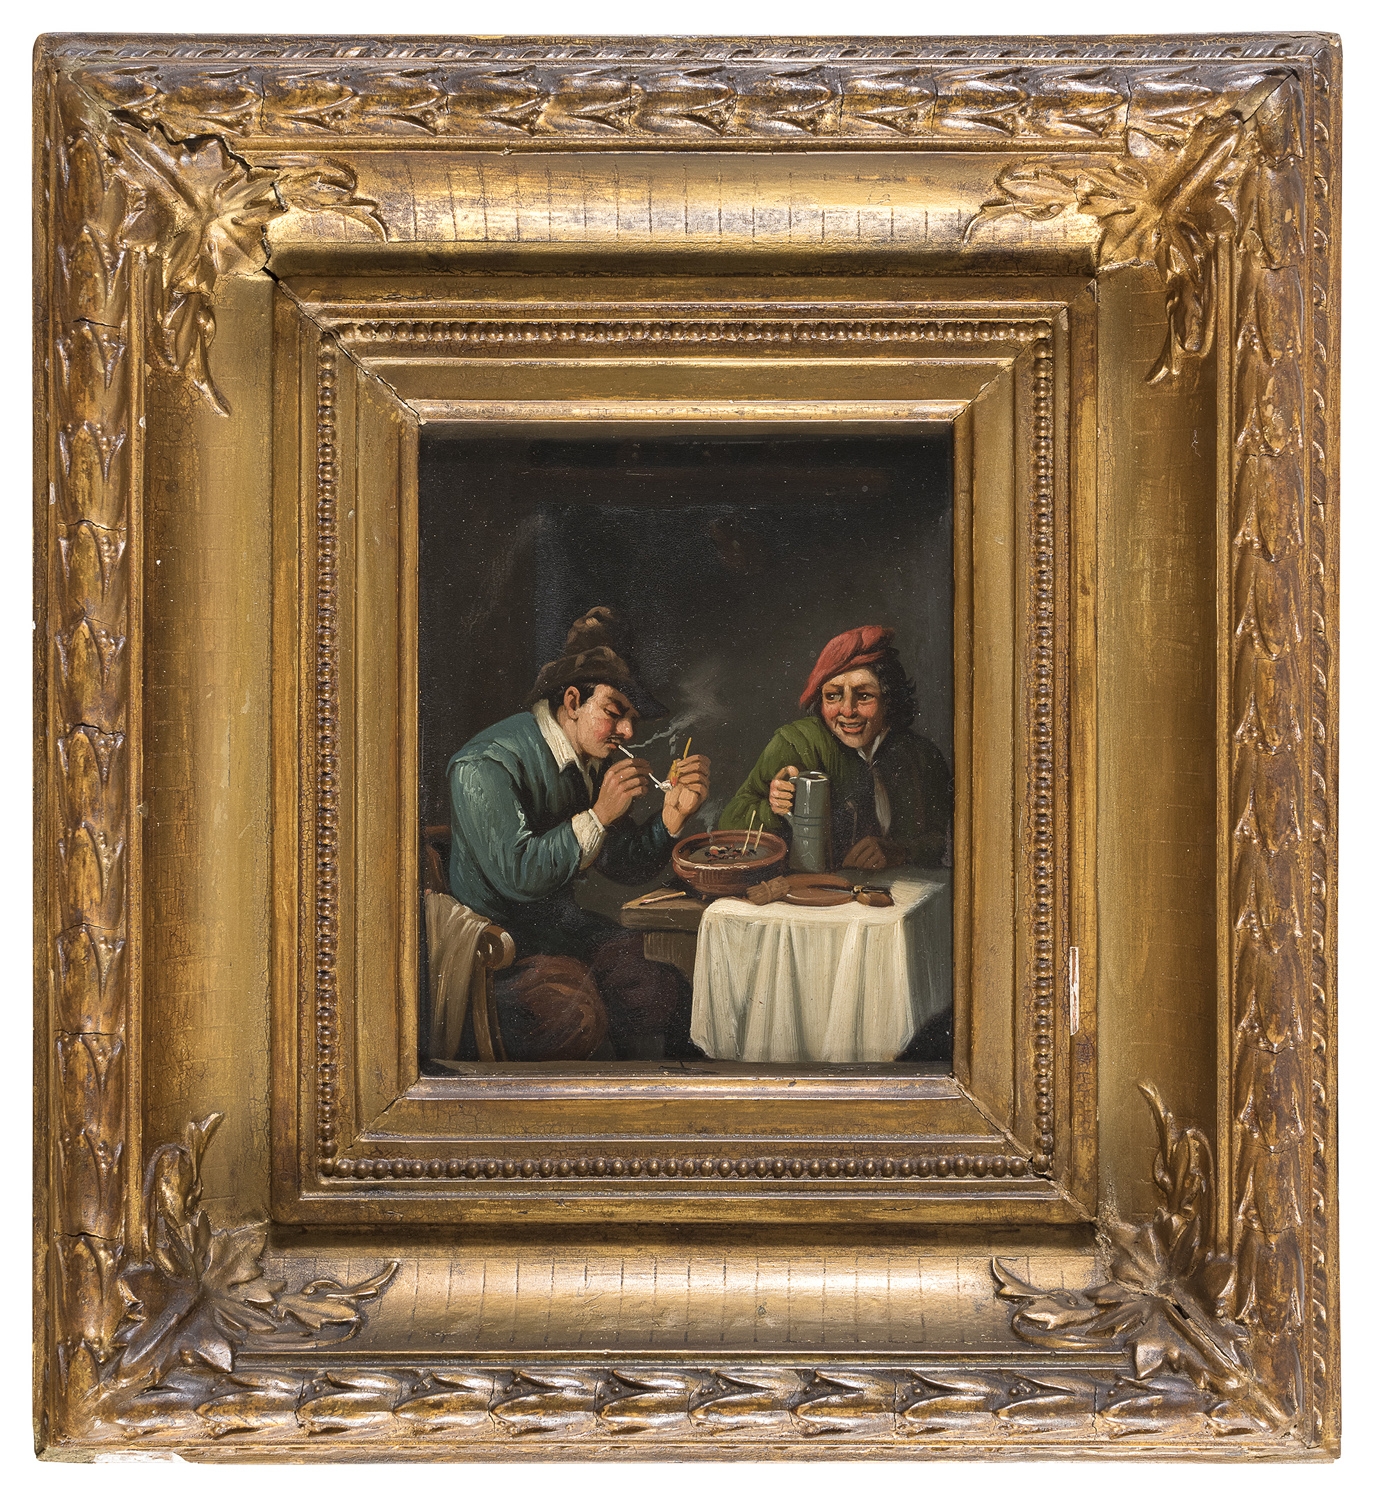 A PAIR OF DUTCH OIL PAINTINGS 19TH CENTURY - Image 2 of 2